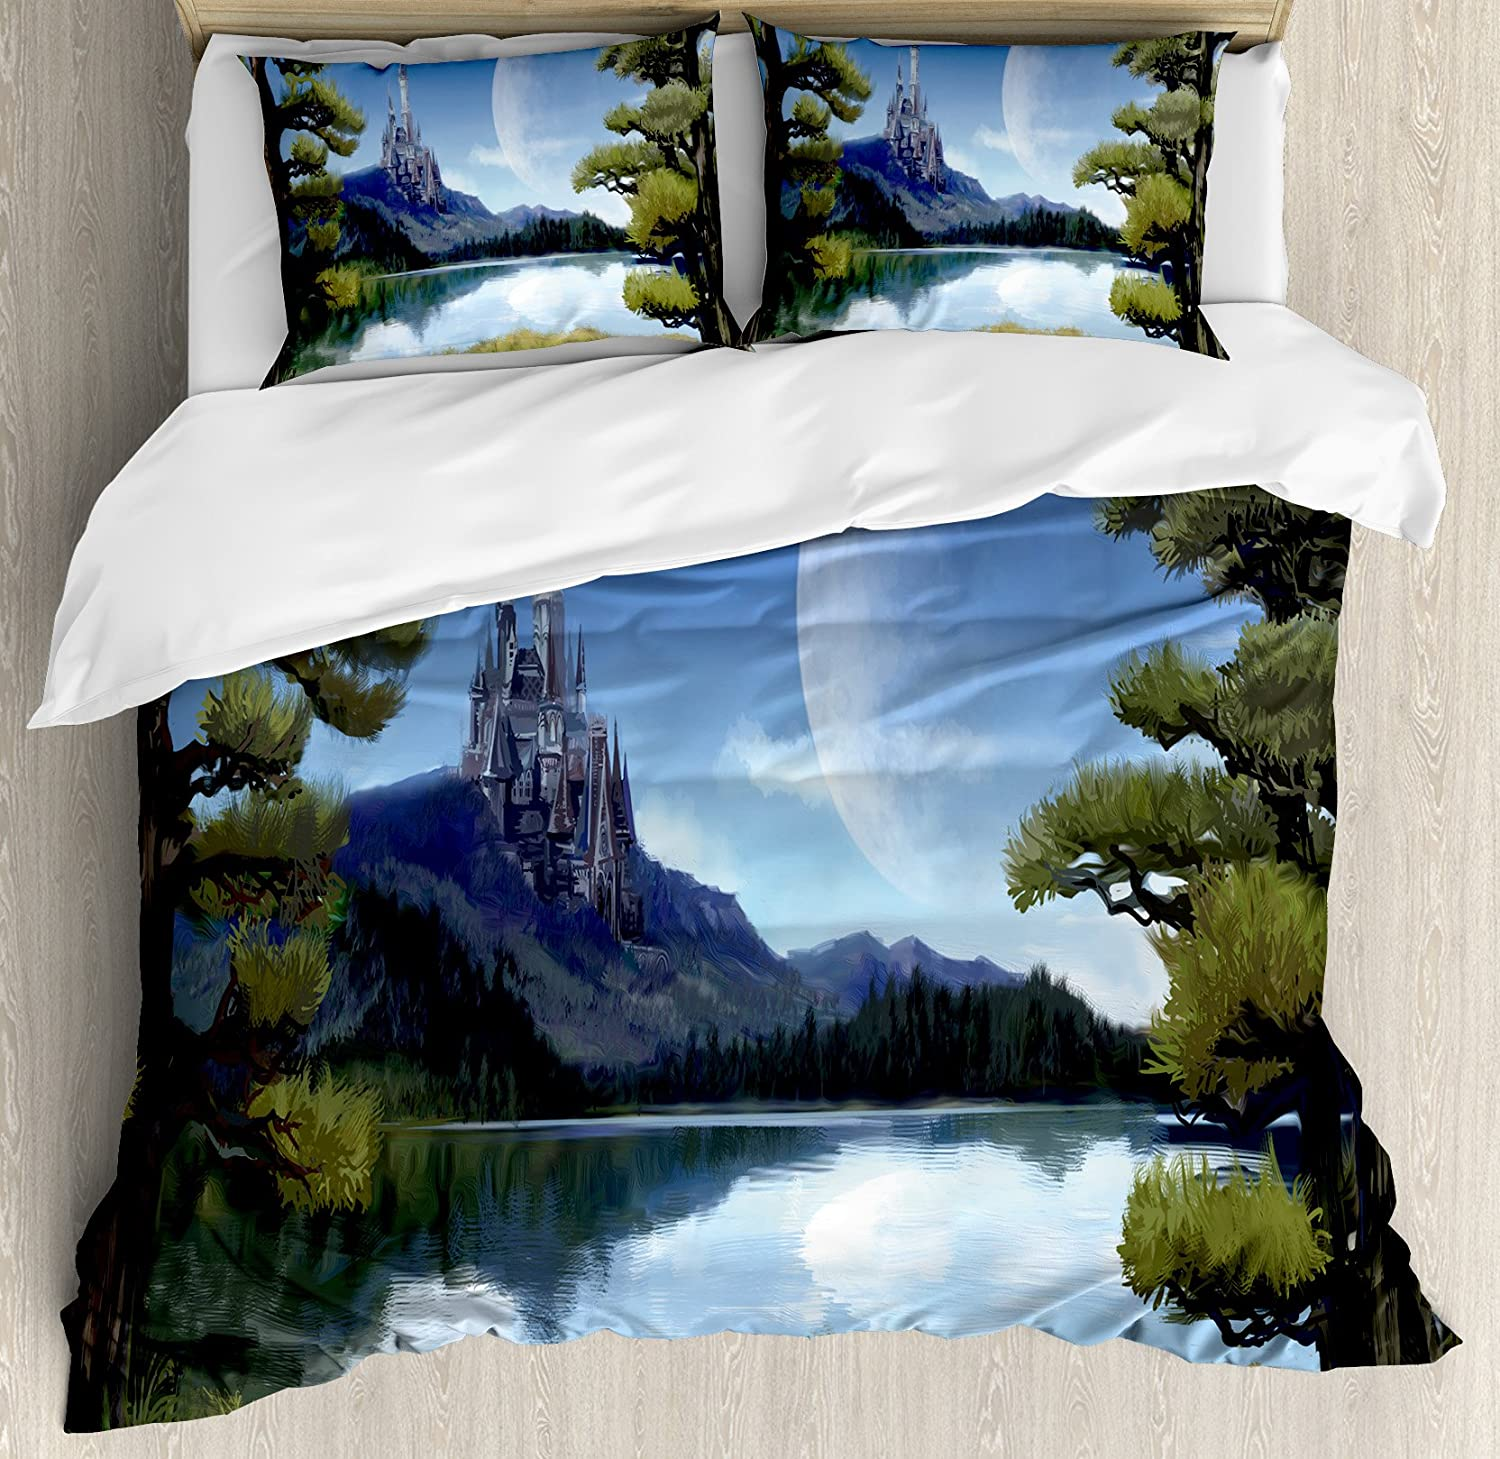 Ambesonne Fantasy Duvet Cover Set Moon Surreal Scene With Riverside Lake Forest And Medieval Castle On Hill Art Decorative 3 Piece Bedding Set With 2 Pillow Shams Queen Size Green And Blue Home Kitchen Amazon Com